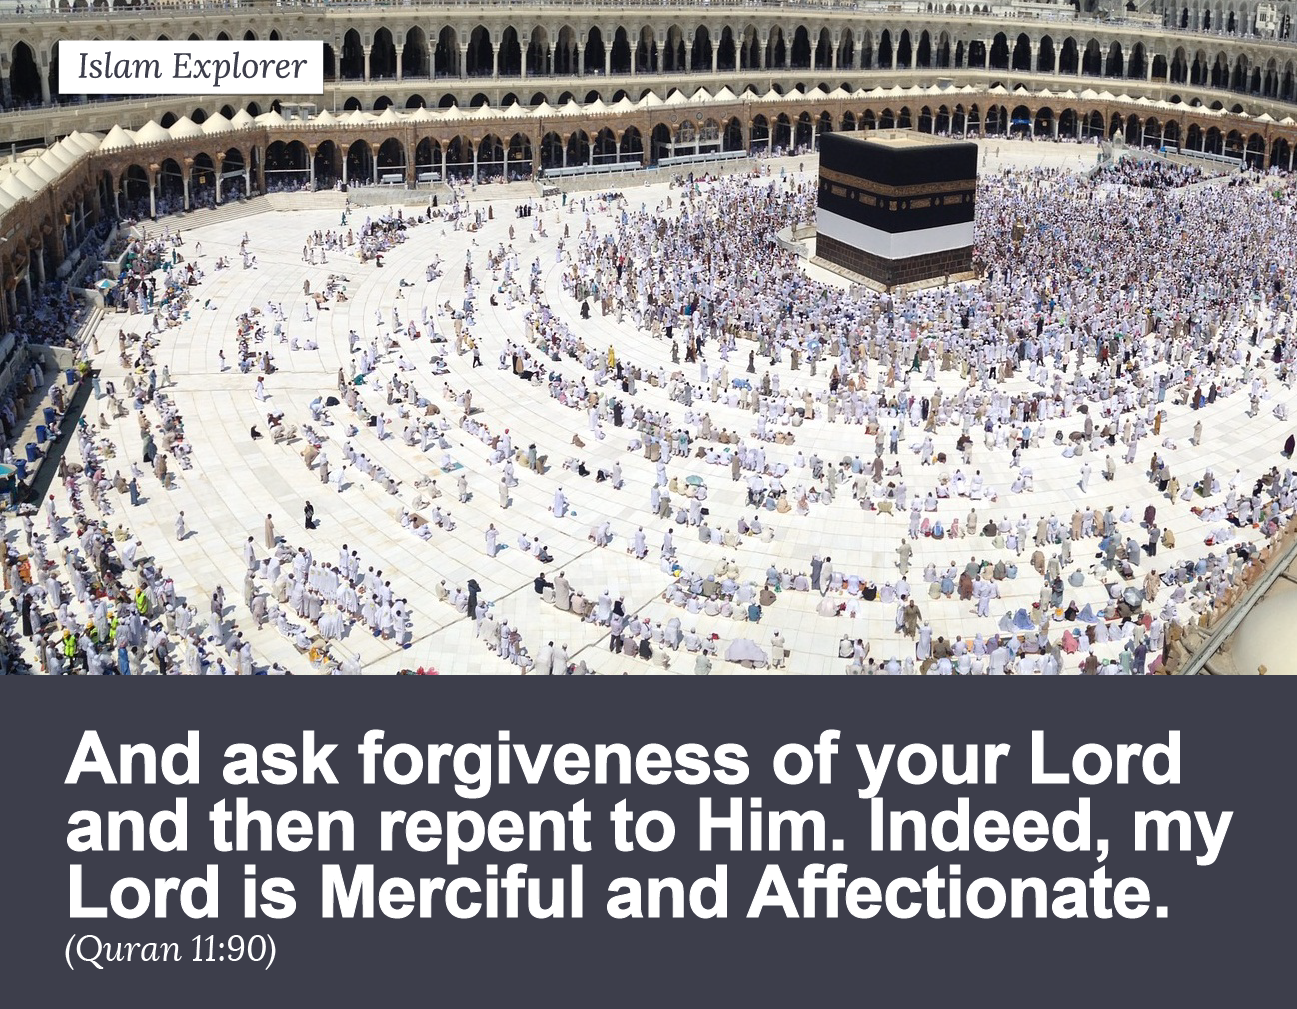 And ask forgiveness of your Lord and then repent to Him.